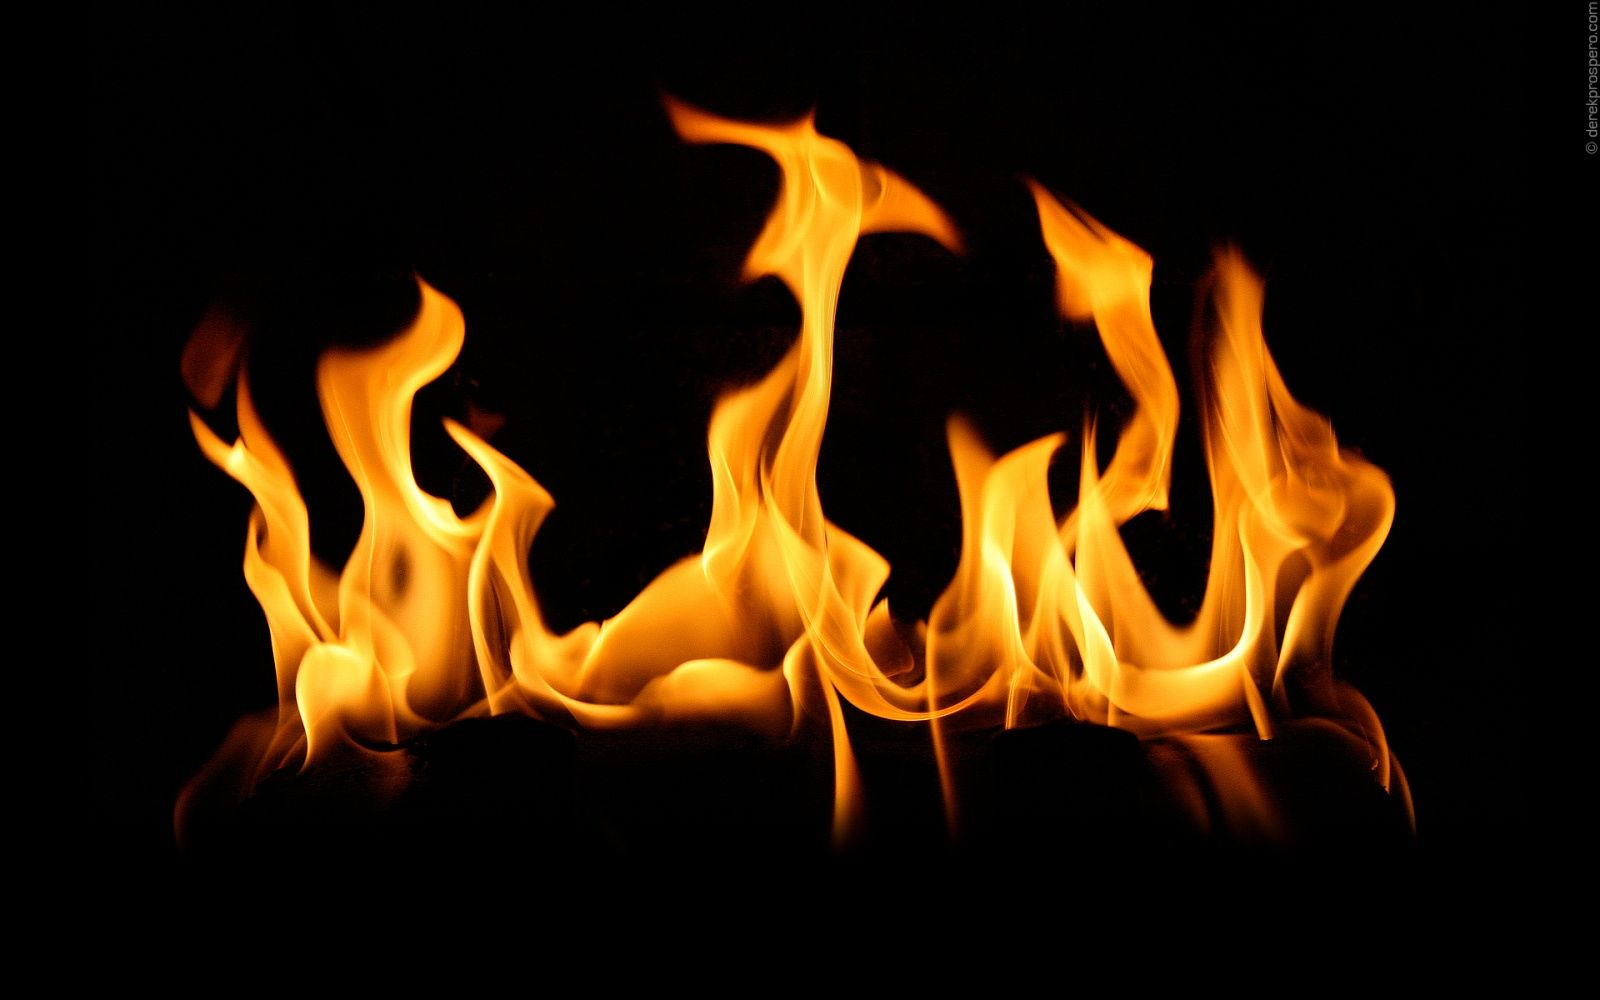 Free Flame, Download Free Clip Art, Free Clip Art on Clipart.